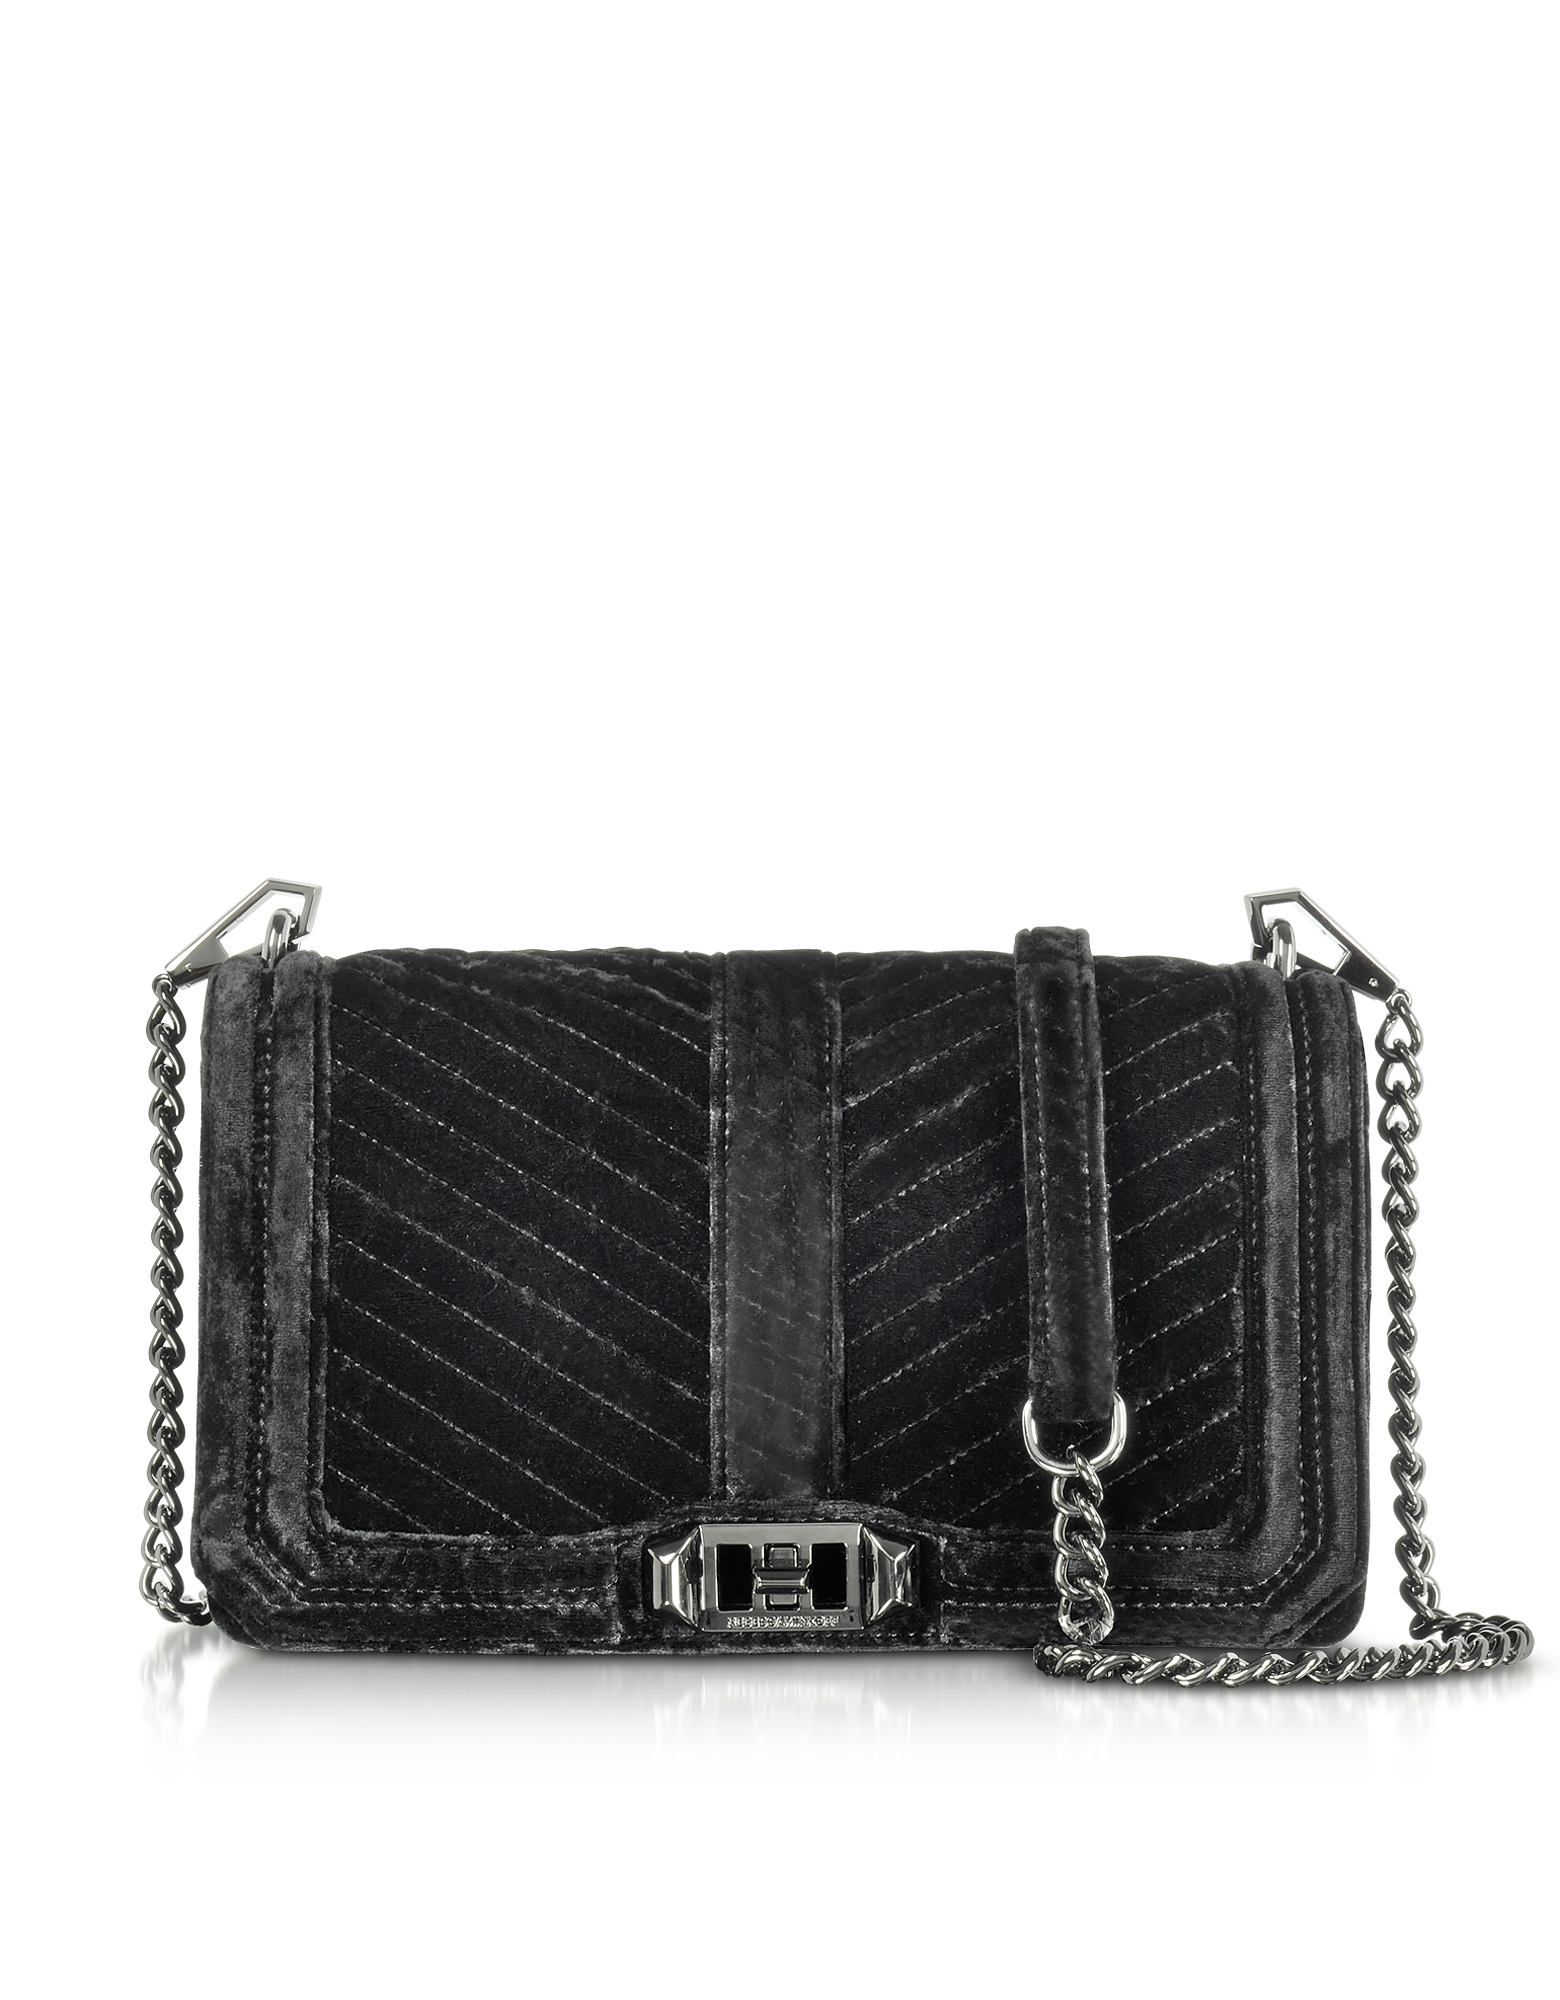 Rebecca Minkoff Black Chevron Quilted Velvet Love Crossbody Bag